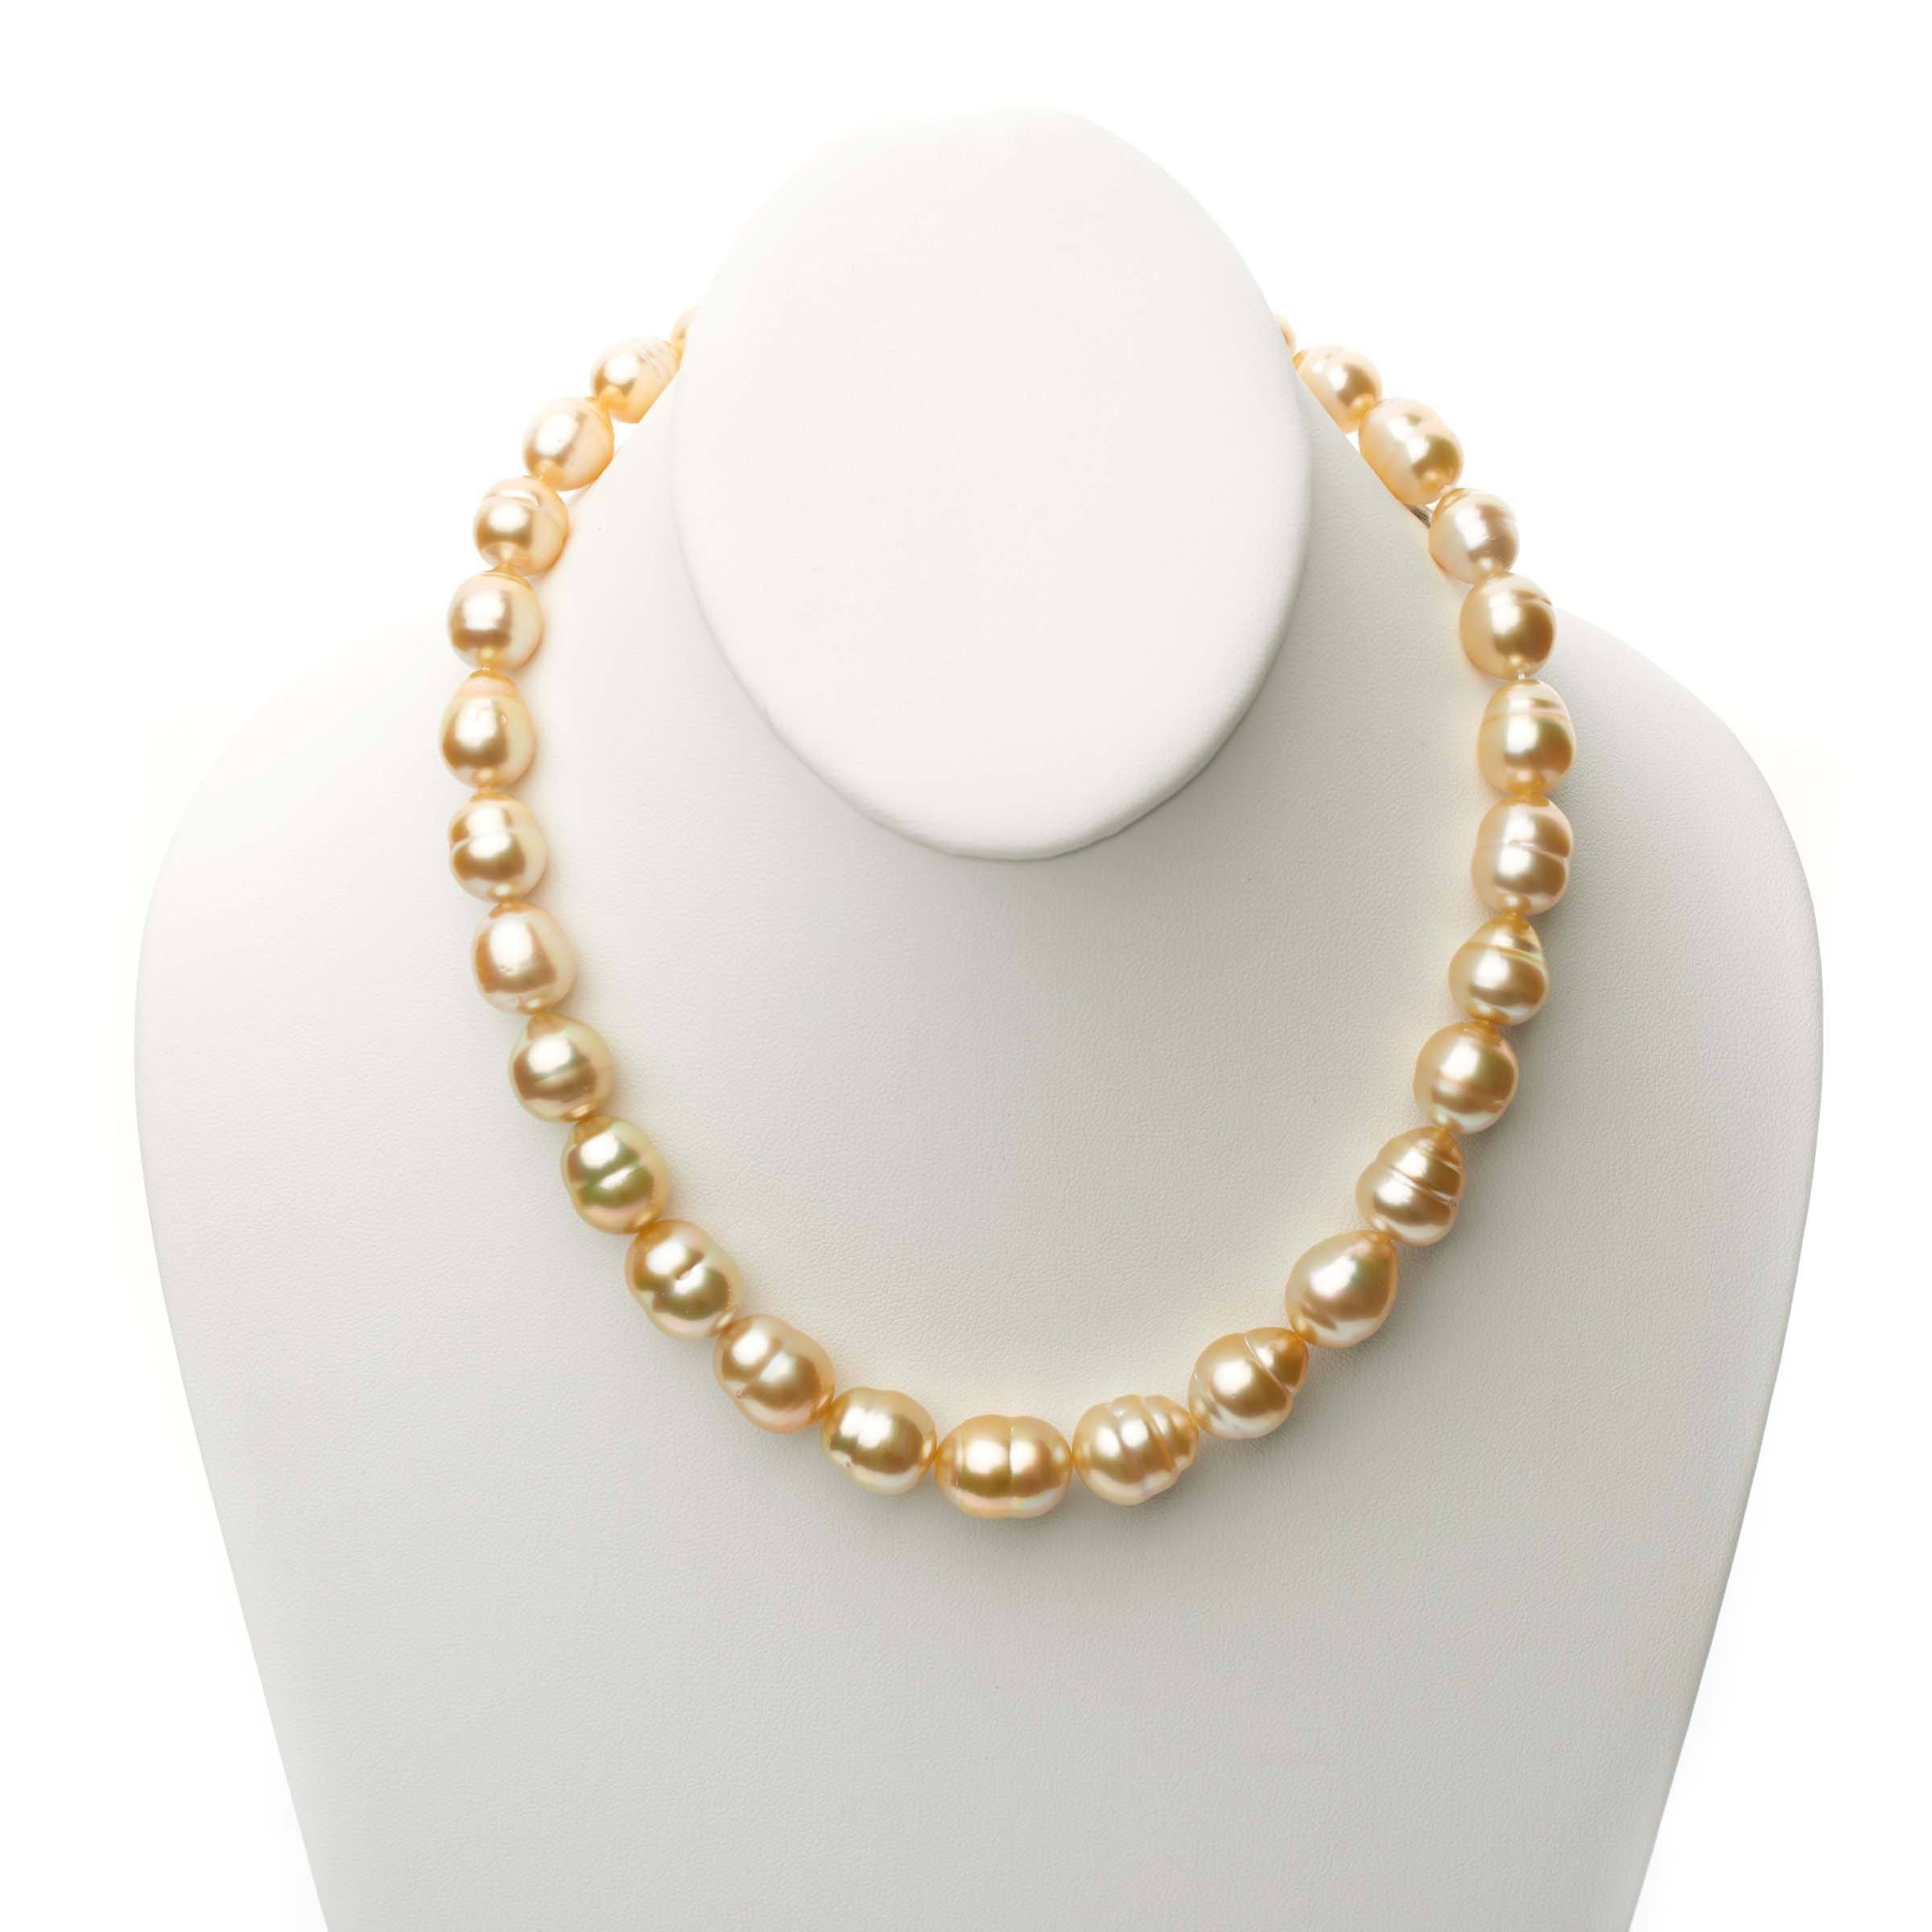 18-inch 10.2-13.0 mm AA+/AAA Golden South Sea Baroque Pearl Necklace